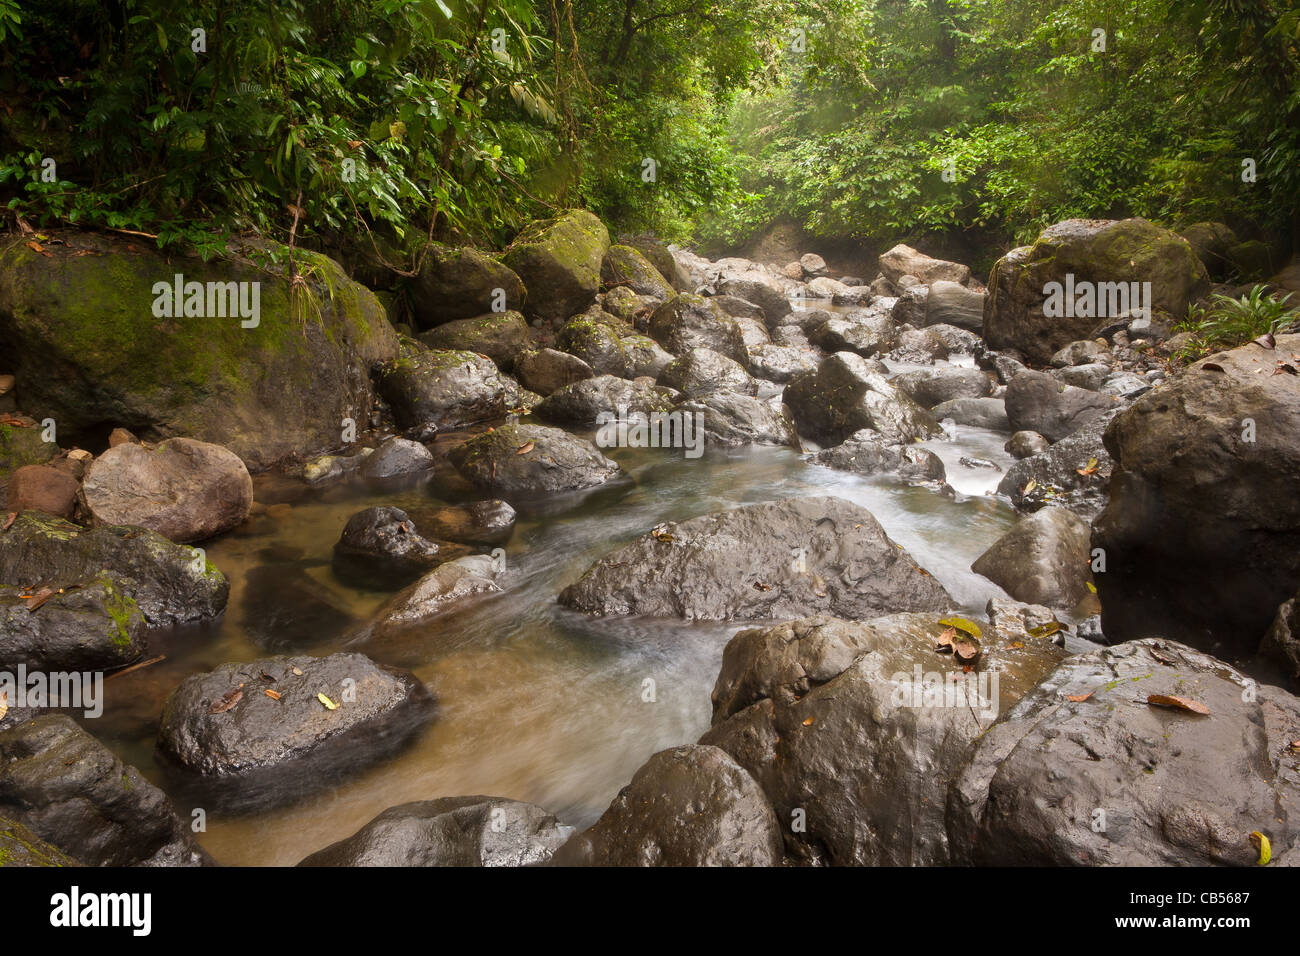 Rocky river beside the old overgrown Camino Real trail in Portobelo national park, Republic of Panama. - Stock Image